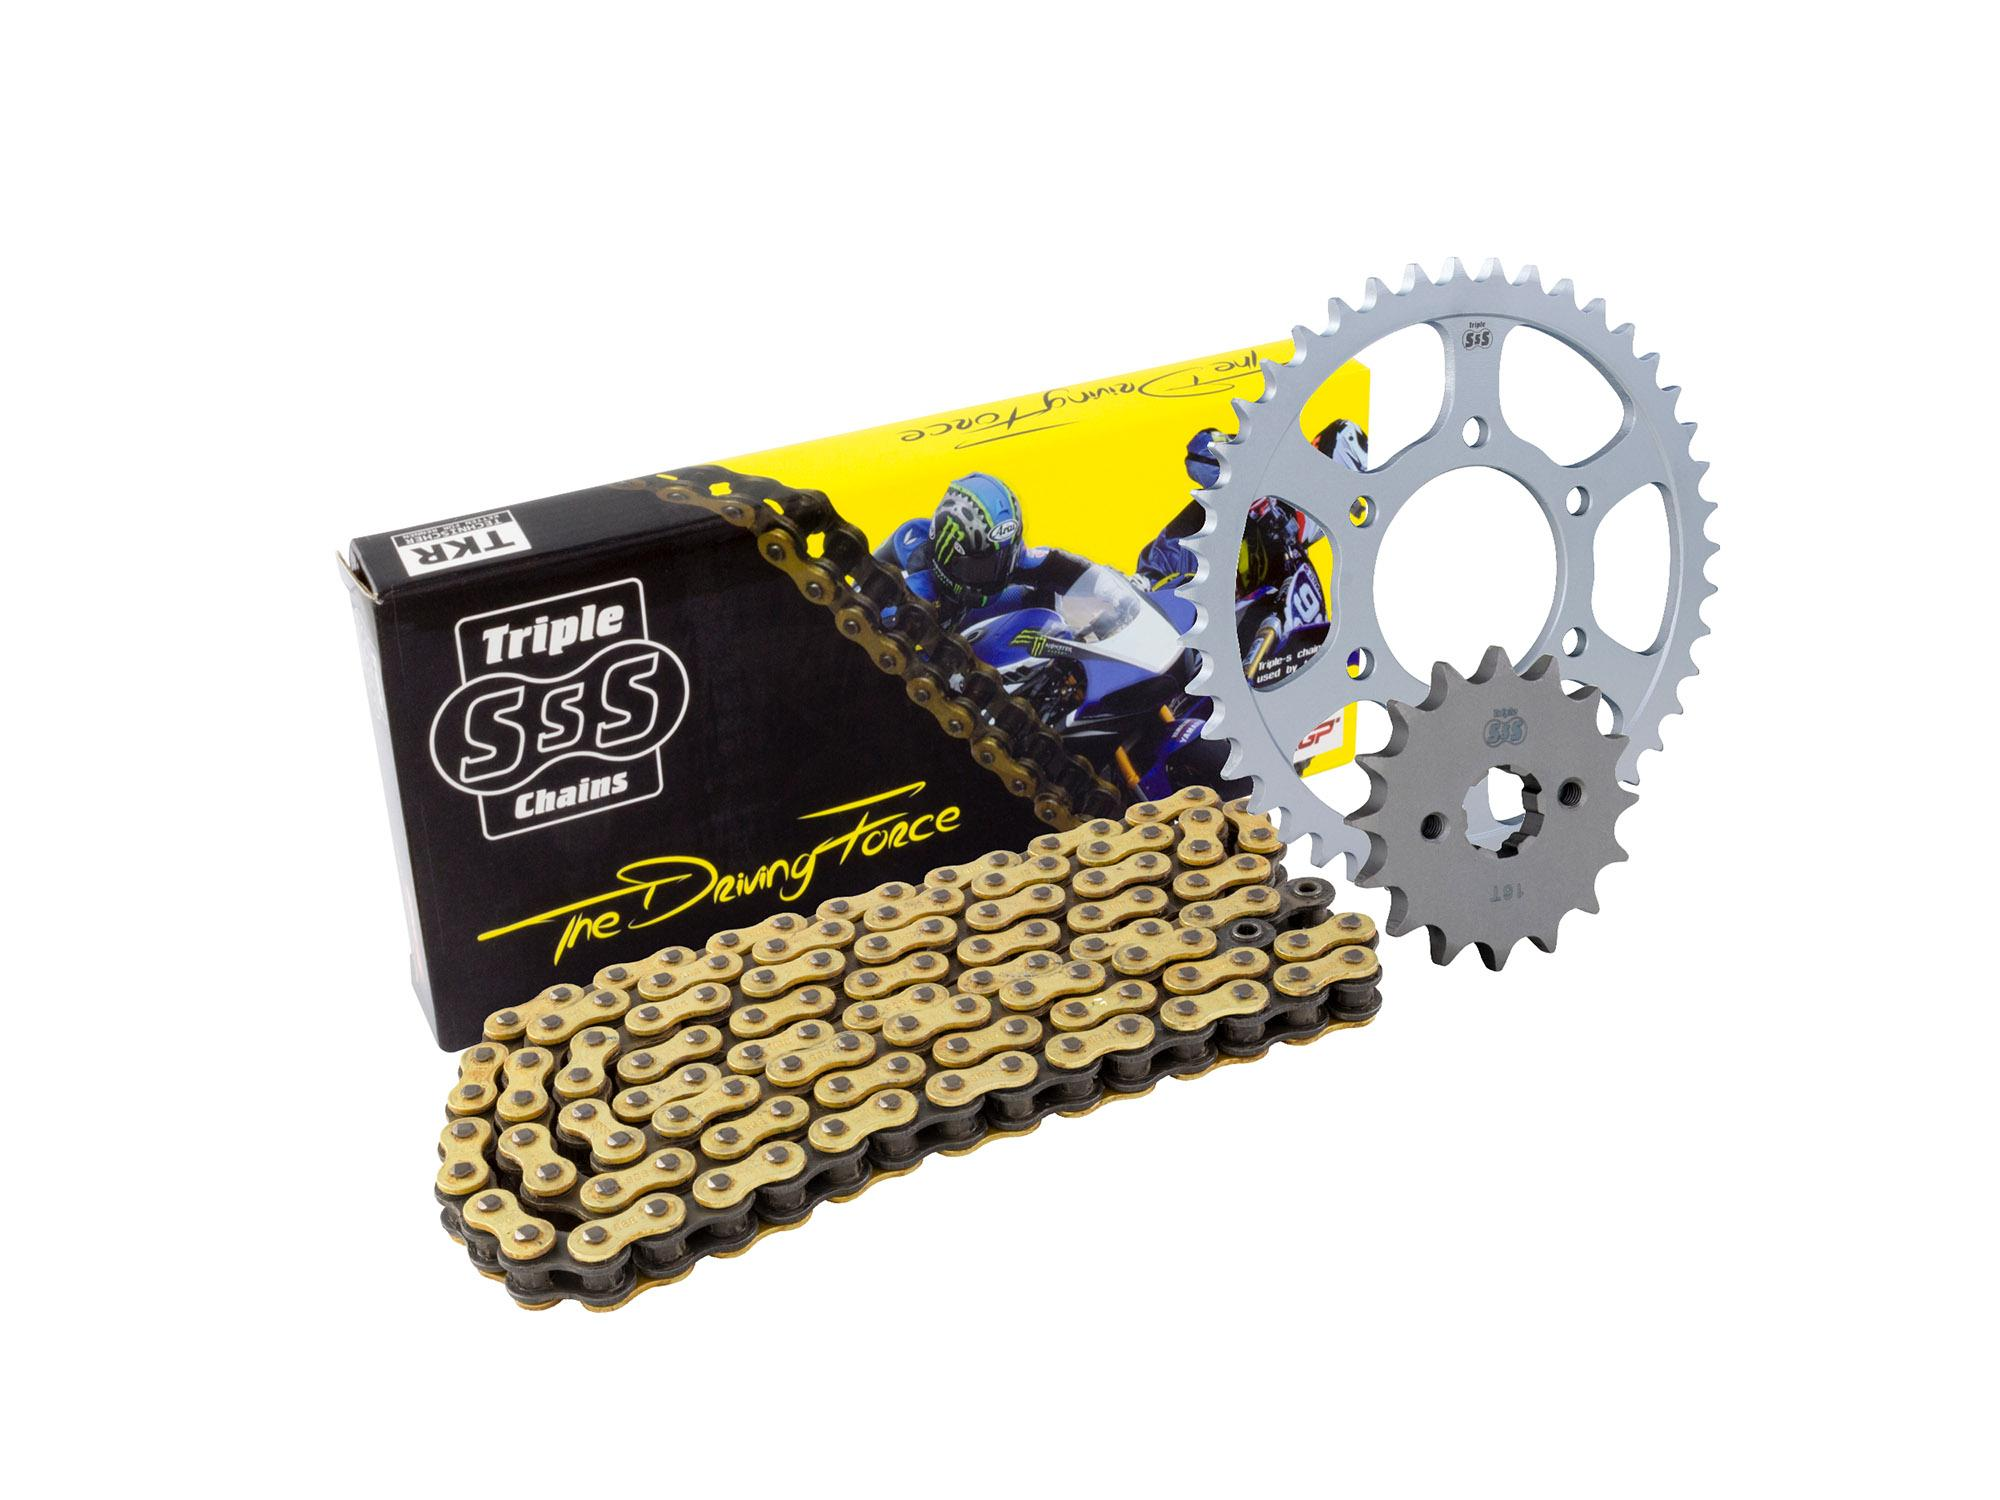 Ducati 999 / S / R 03-06 Chain & Sprocket Kit: 15T Front, 36T Rear, HD O-Ring Gold Chain 525H 96Link